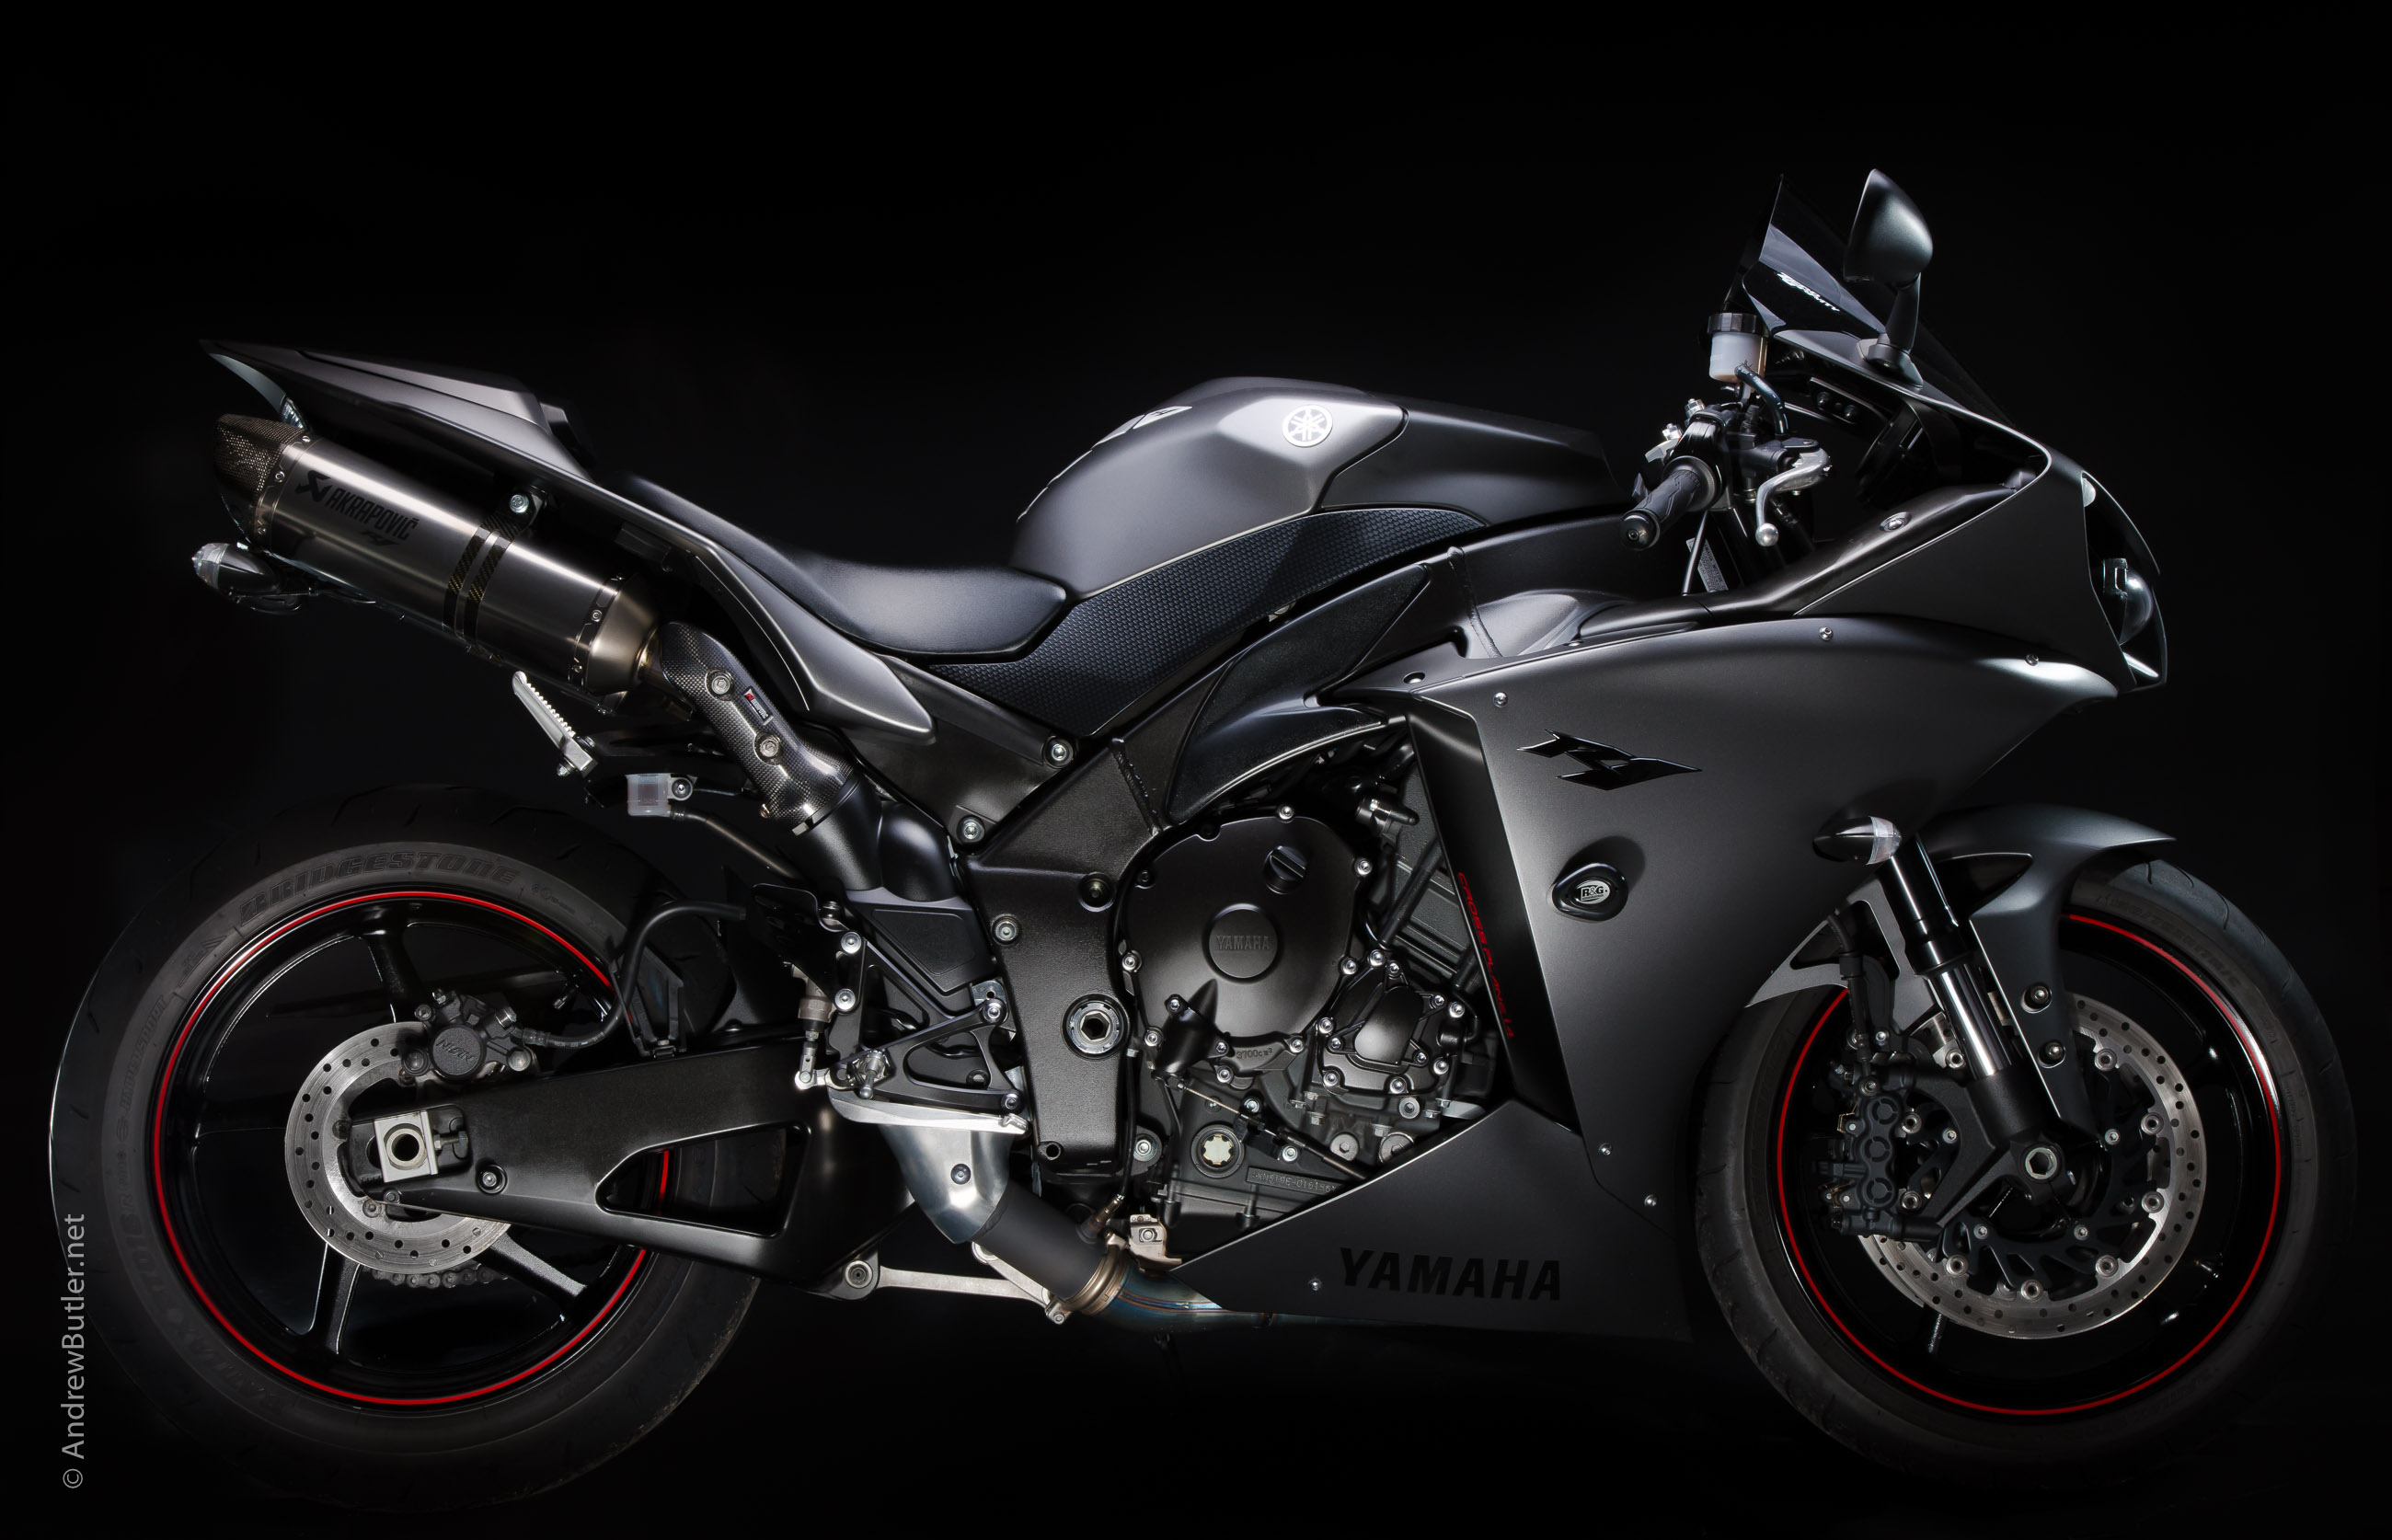 Yamaha R1 photographed by Andrew Butler by motorbike photographer Andrew Butler